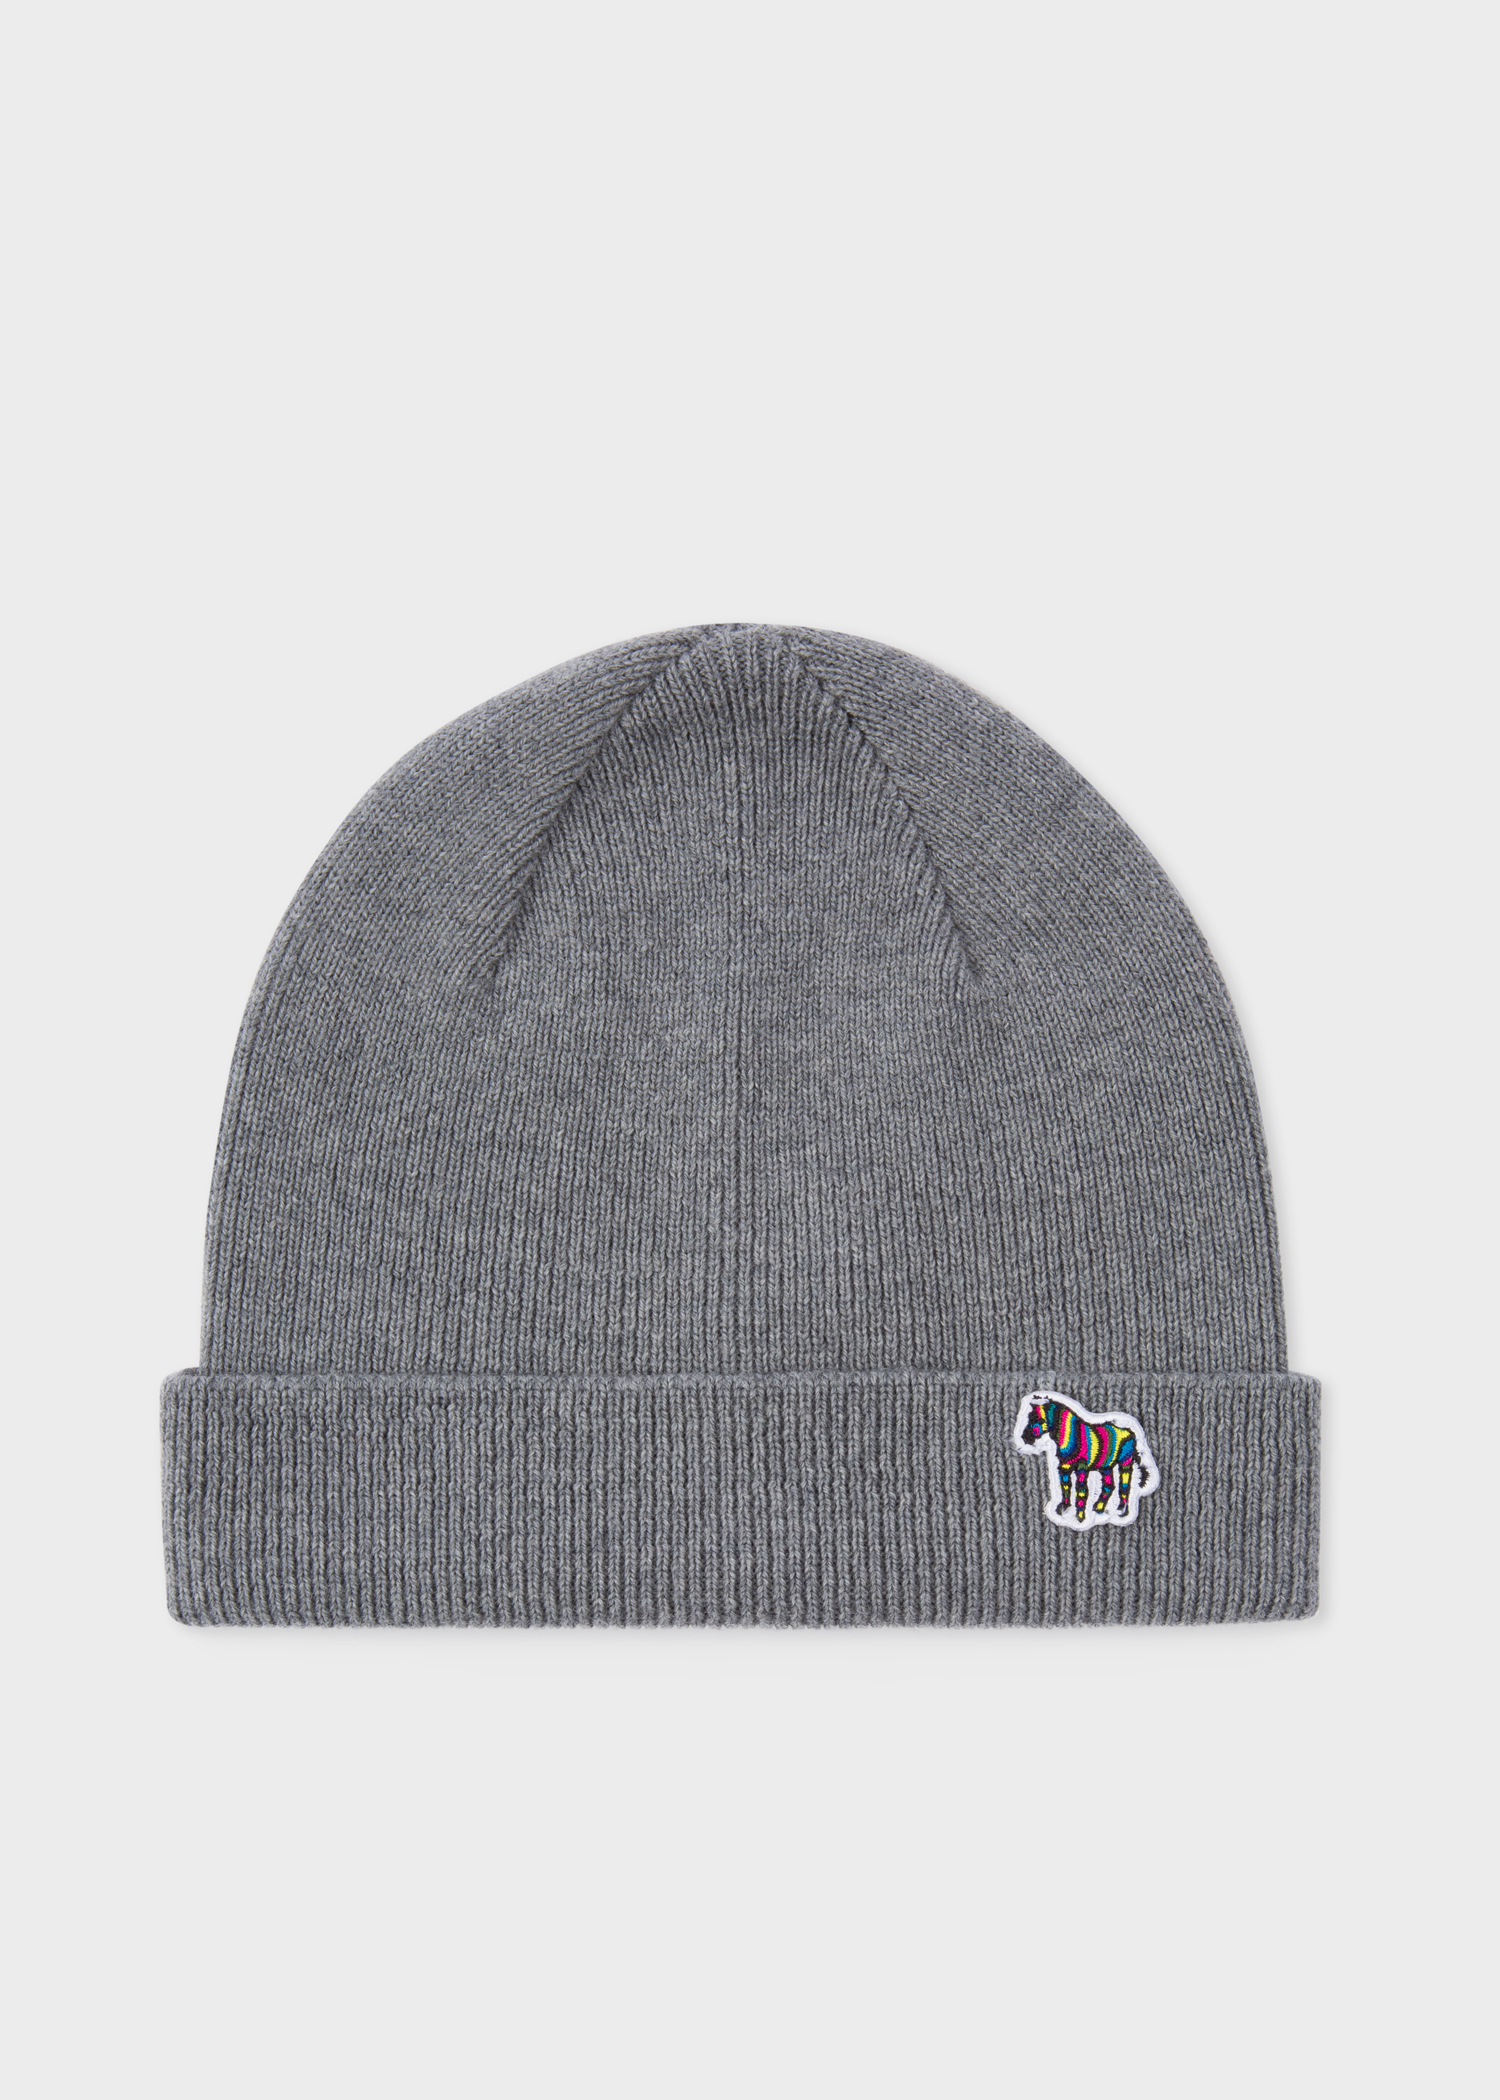 Front View - Men s Grey  Zebra  Logo Ribbed Lambswool Beanie Hat Paul Smith dbaa33a0443